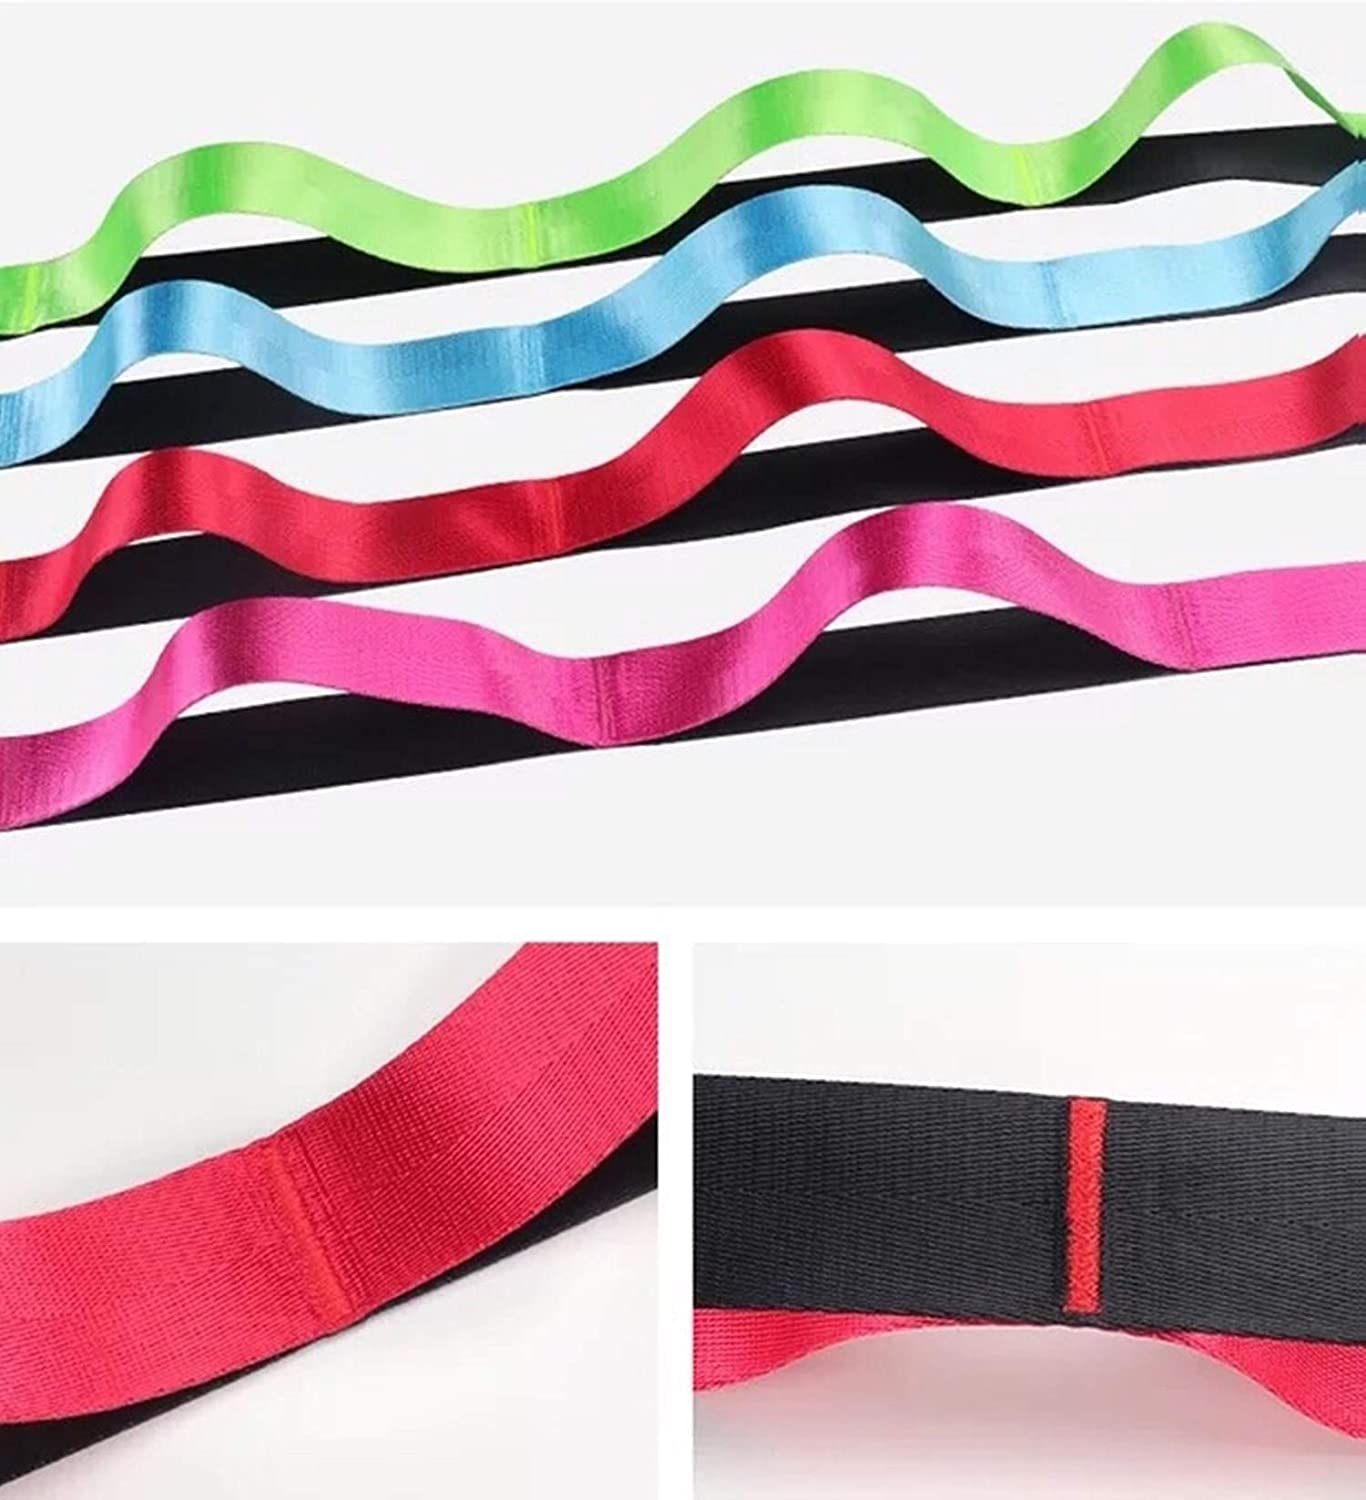 Physical Therapy Dorathye Yoga Stretching Strap Non-Elastic Exercise Bands Straps 12 Loops 8.8FT Exercise Booklet Best for Daily Stretching Pilates Fitness Yoga